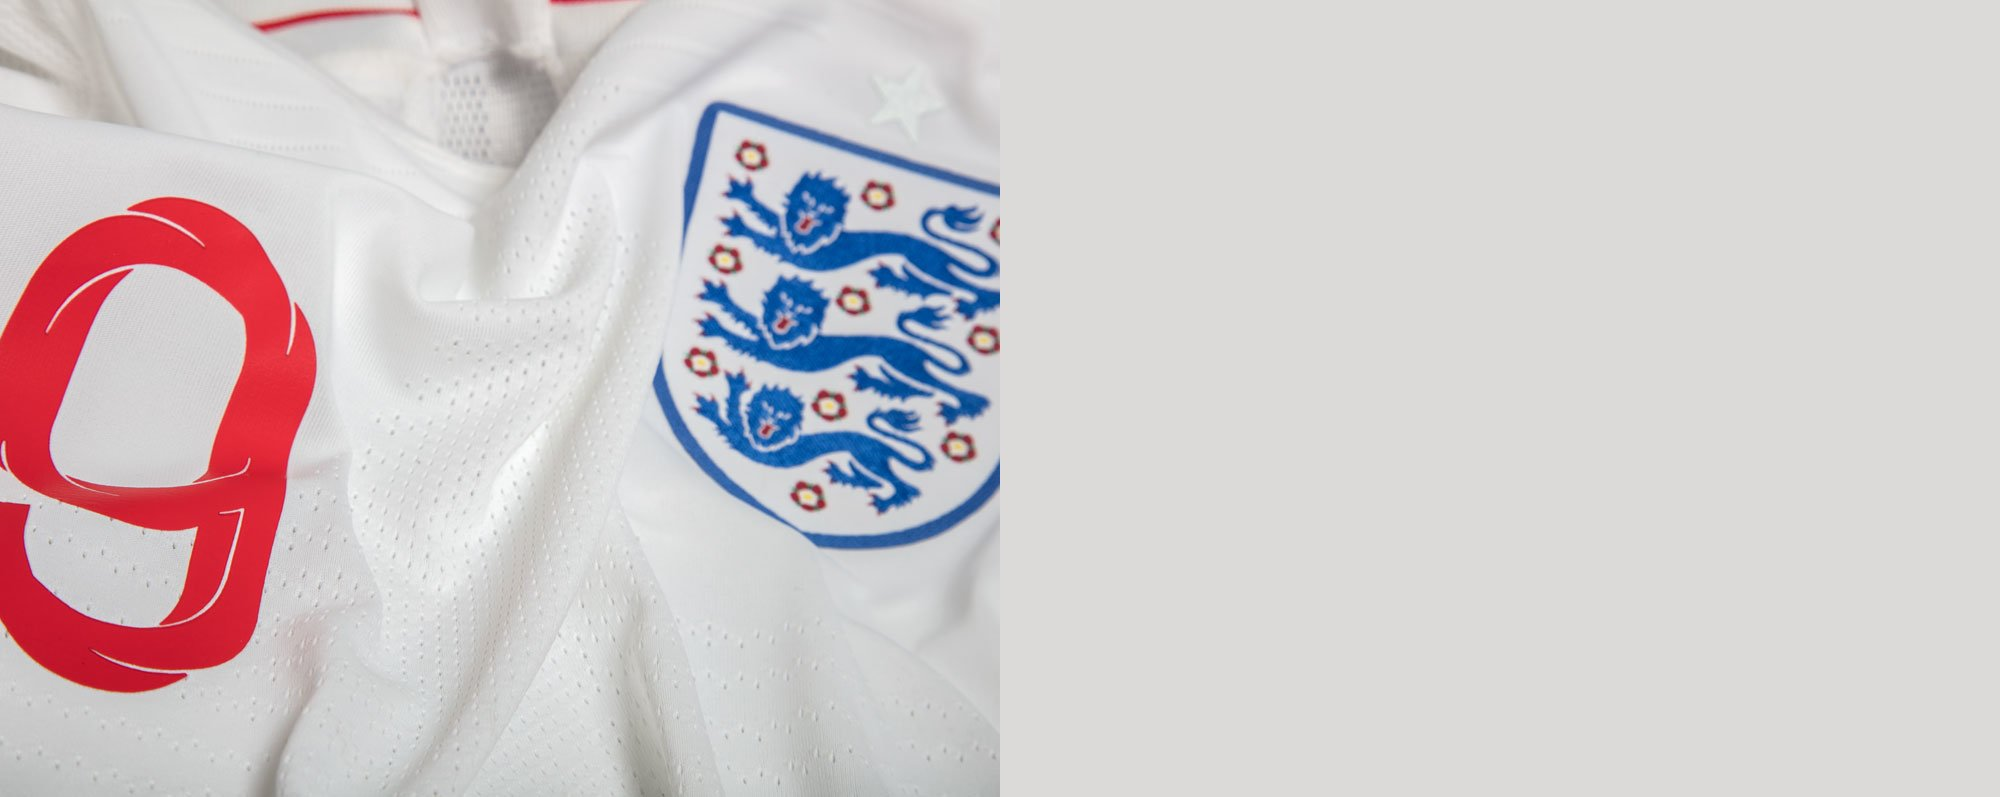 b7ffcd030 Whoever your team or country, make it your own with a name and number for  just £10.